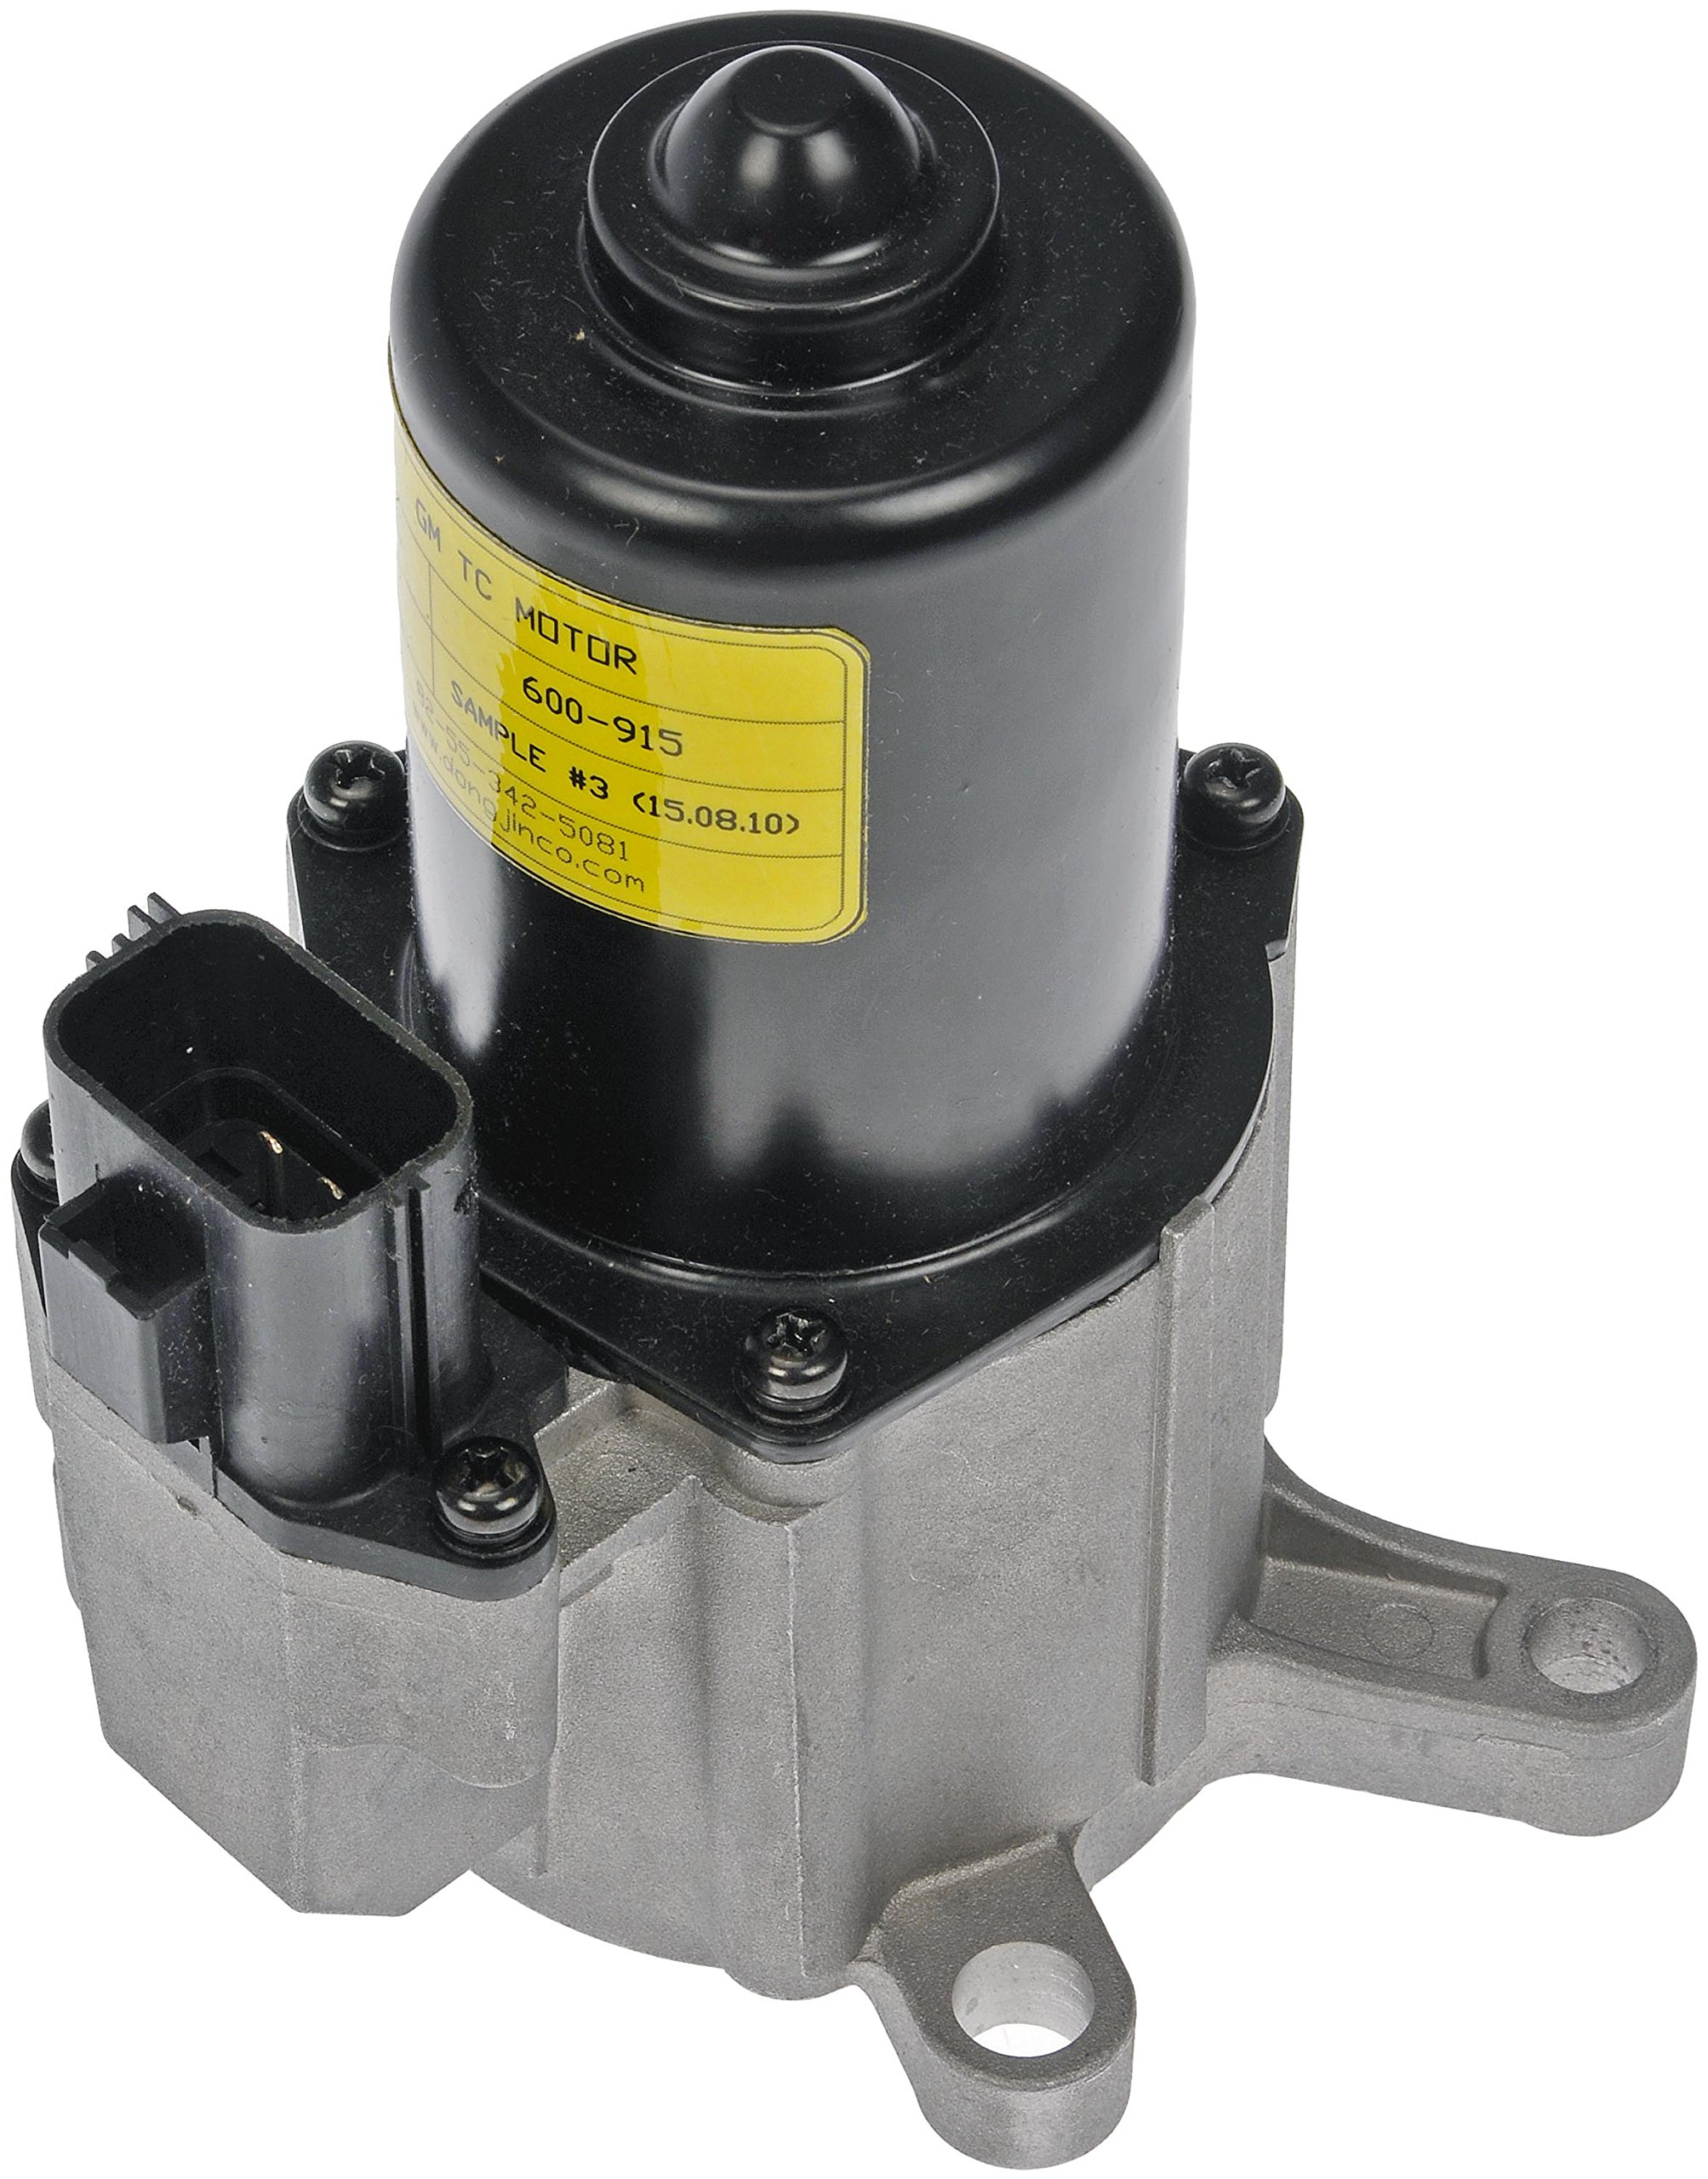 Cheap 4wd Transfer Case Find Deals On Line At 1999 3500 Dodge Vacume Lines Get Quotations Dorman 600 915 Four Wheel Drive Motor